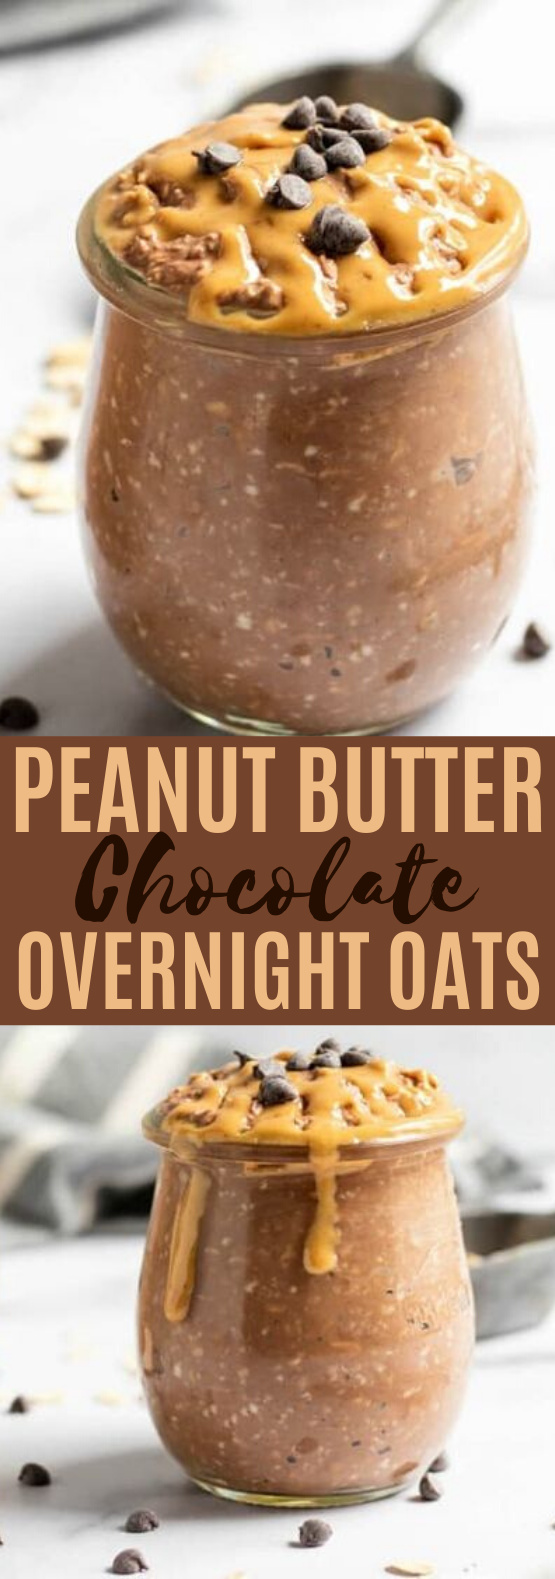 Chocolate Peanut Butter Overnight Oats #healthy #breakfast #easy #keto #peanutbutter